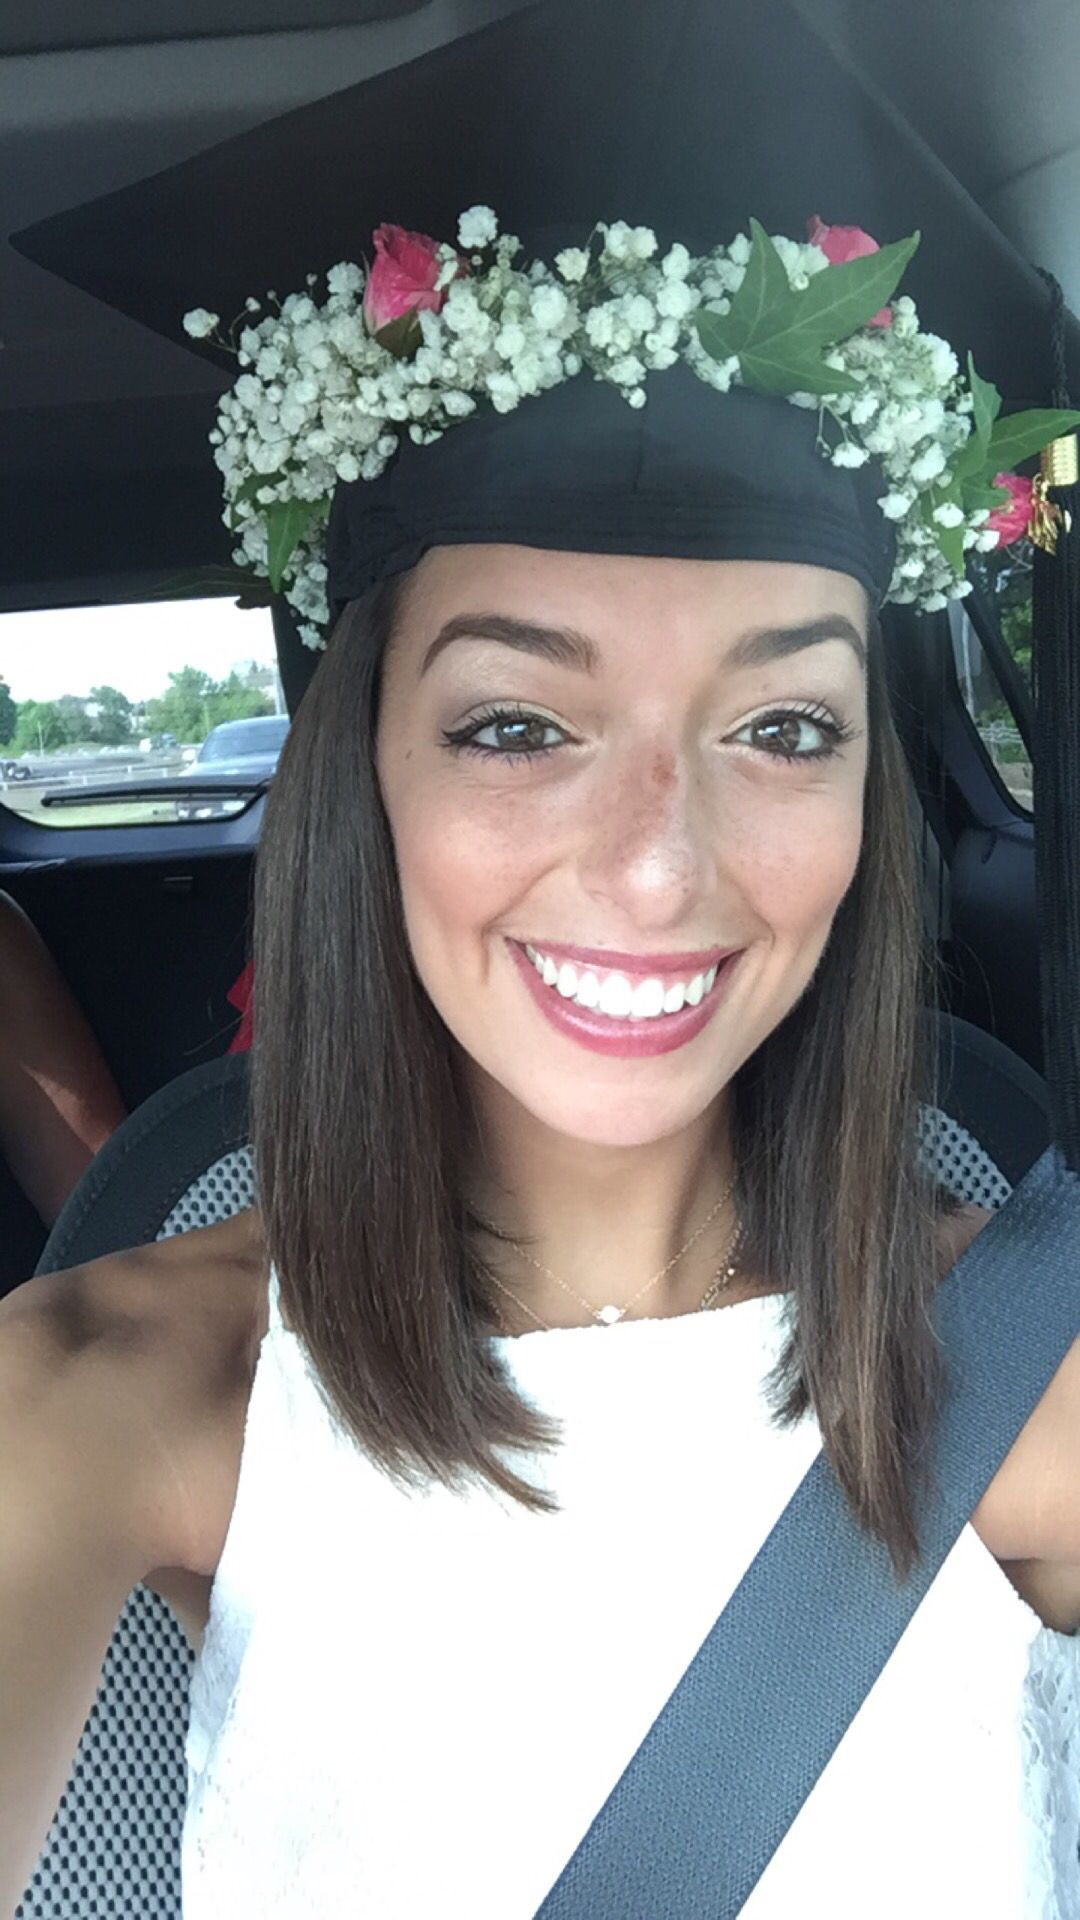 Flower Crown Graduation Cap Everything And Anything In 2018